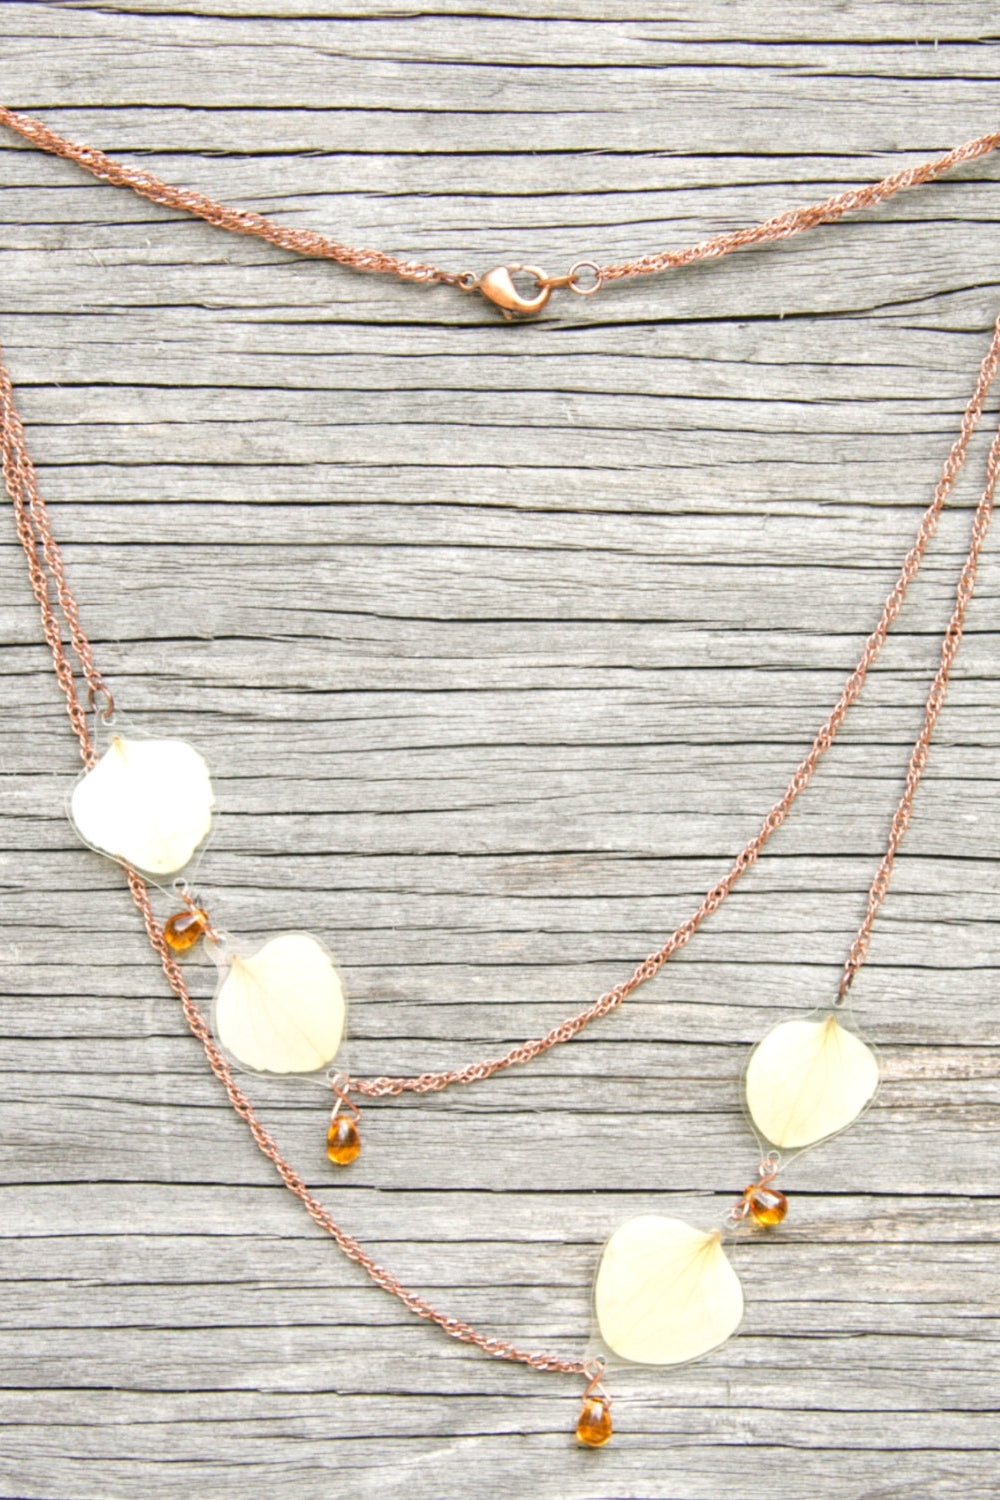 White Hydrangea Pressed Flower Necklace with Amber Czech Glass Beads